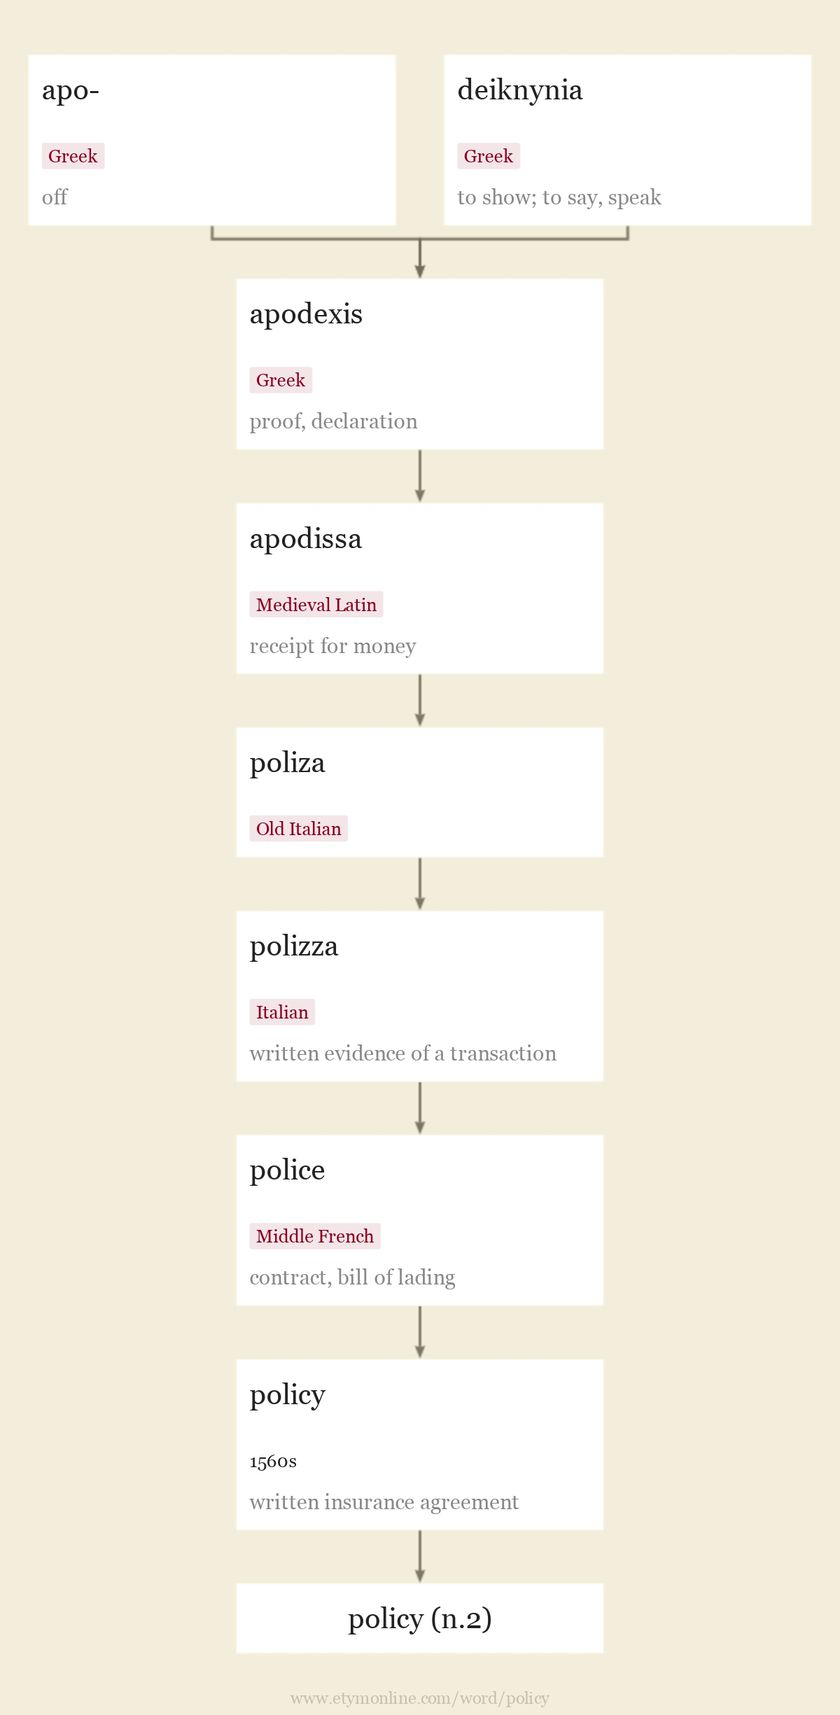 Origin and meaning of policy